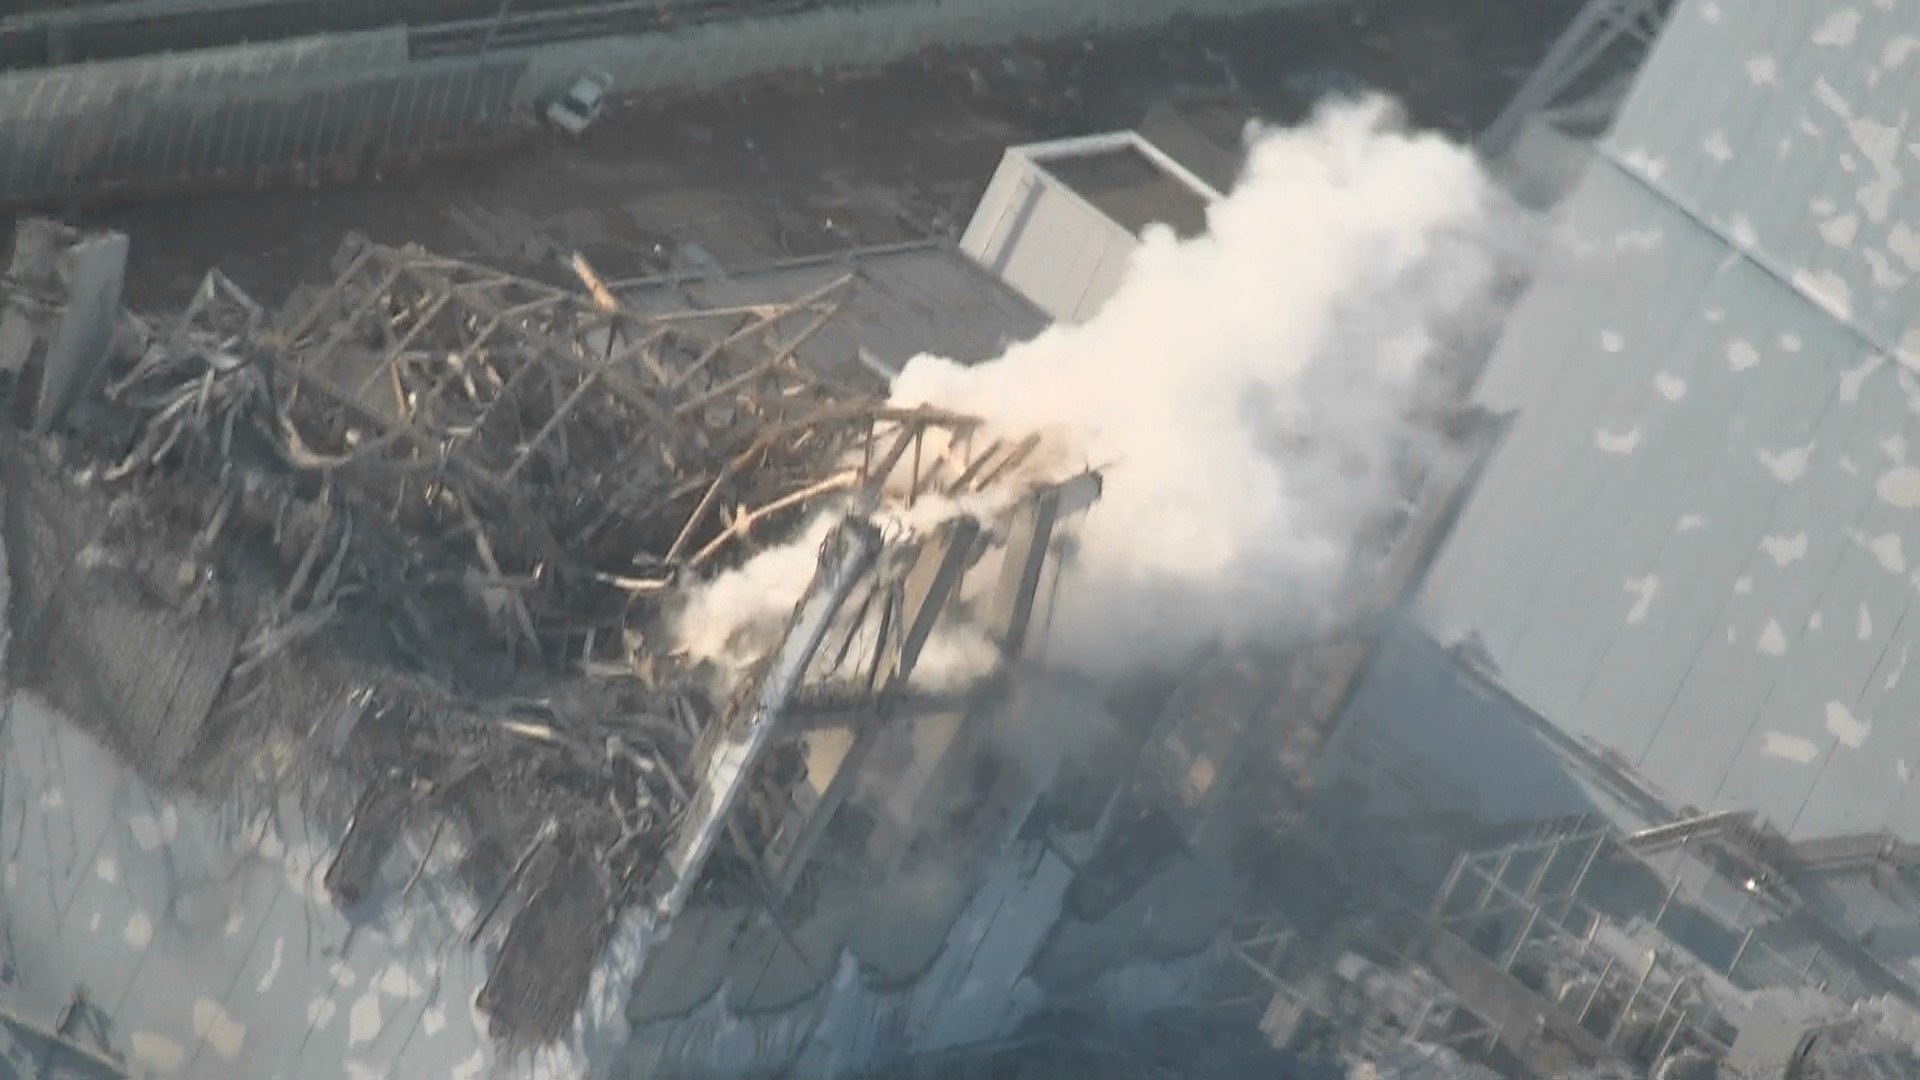 Unit 3 of Fukushima Daiichi Nuclear Power Station (pictured from a helicopter)